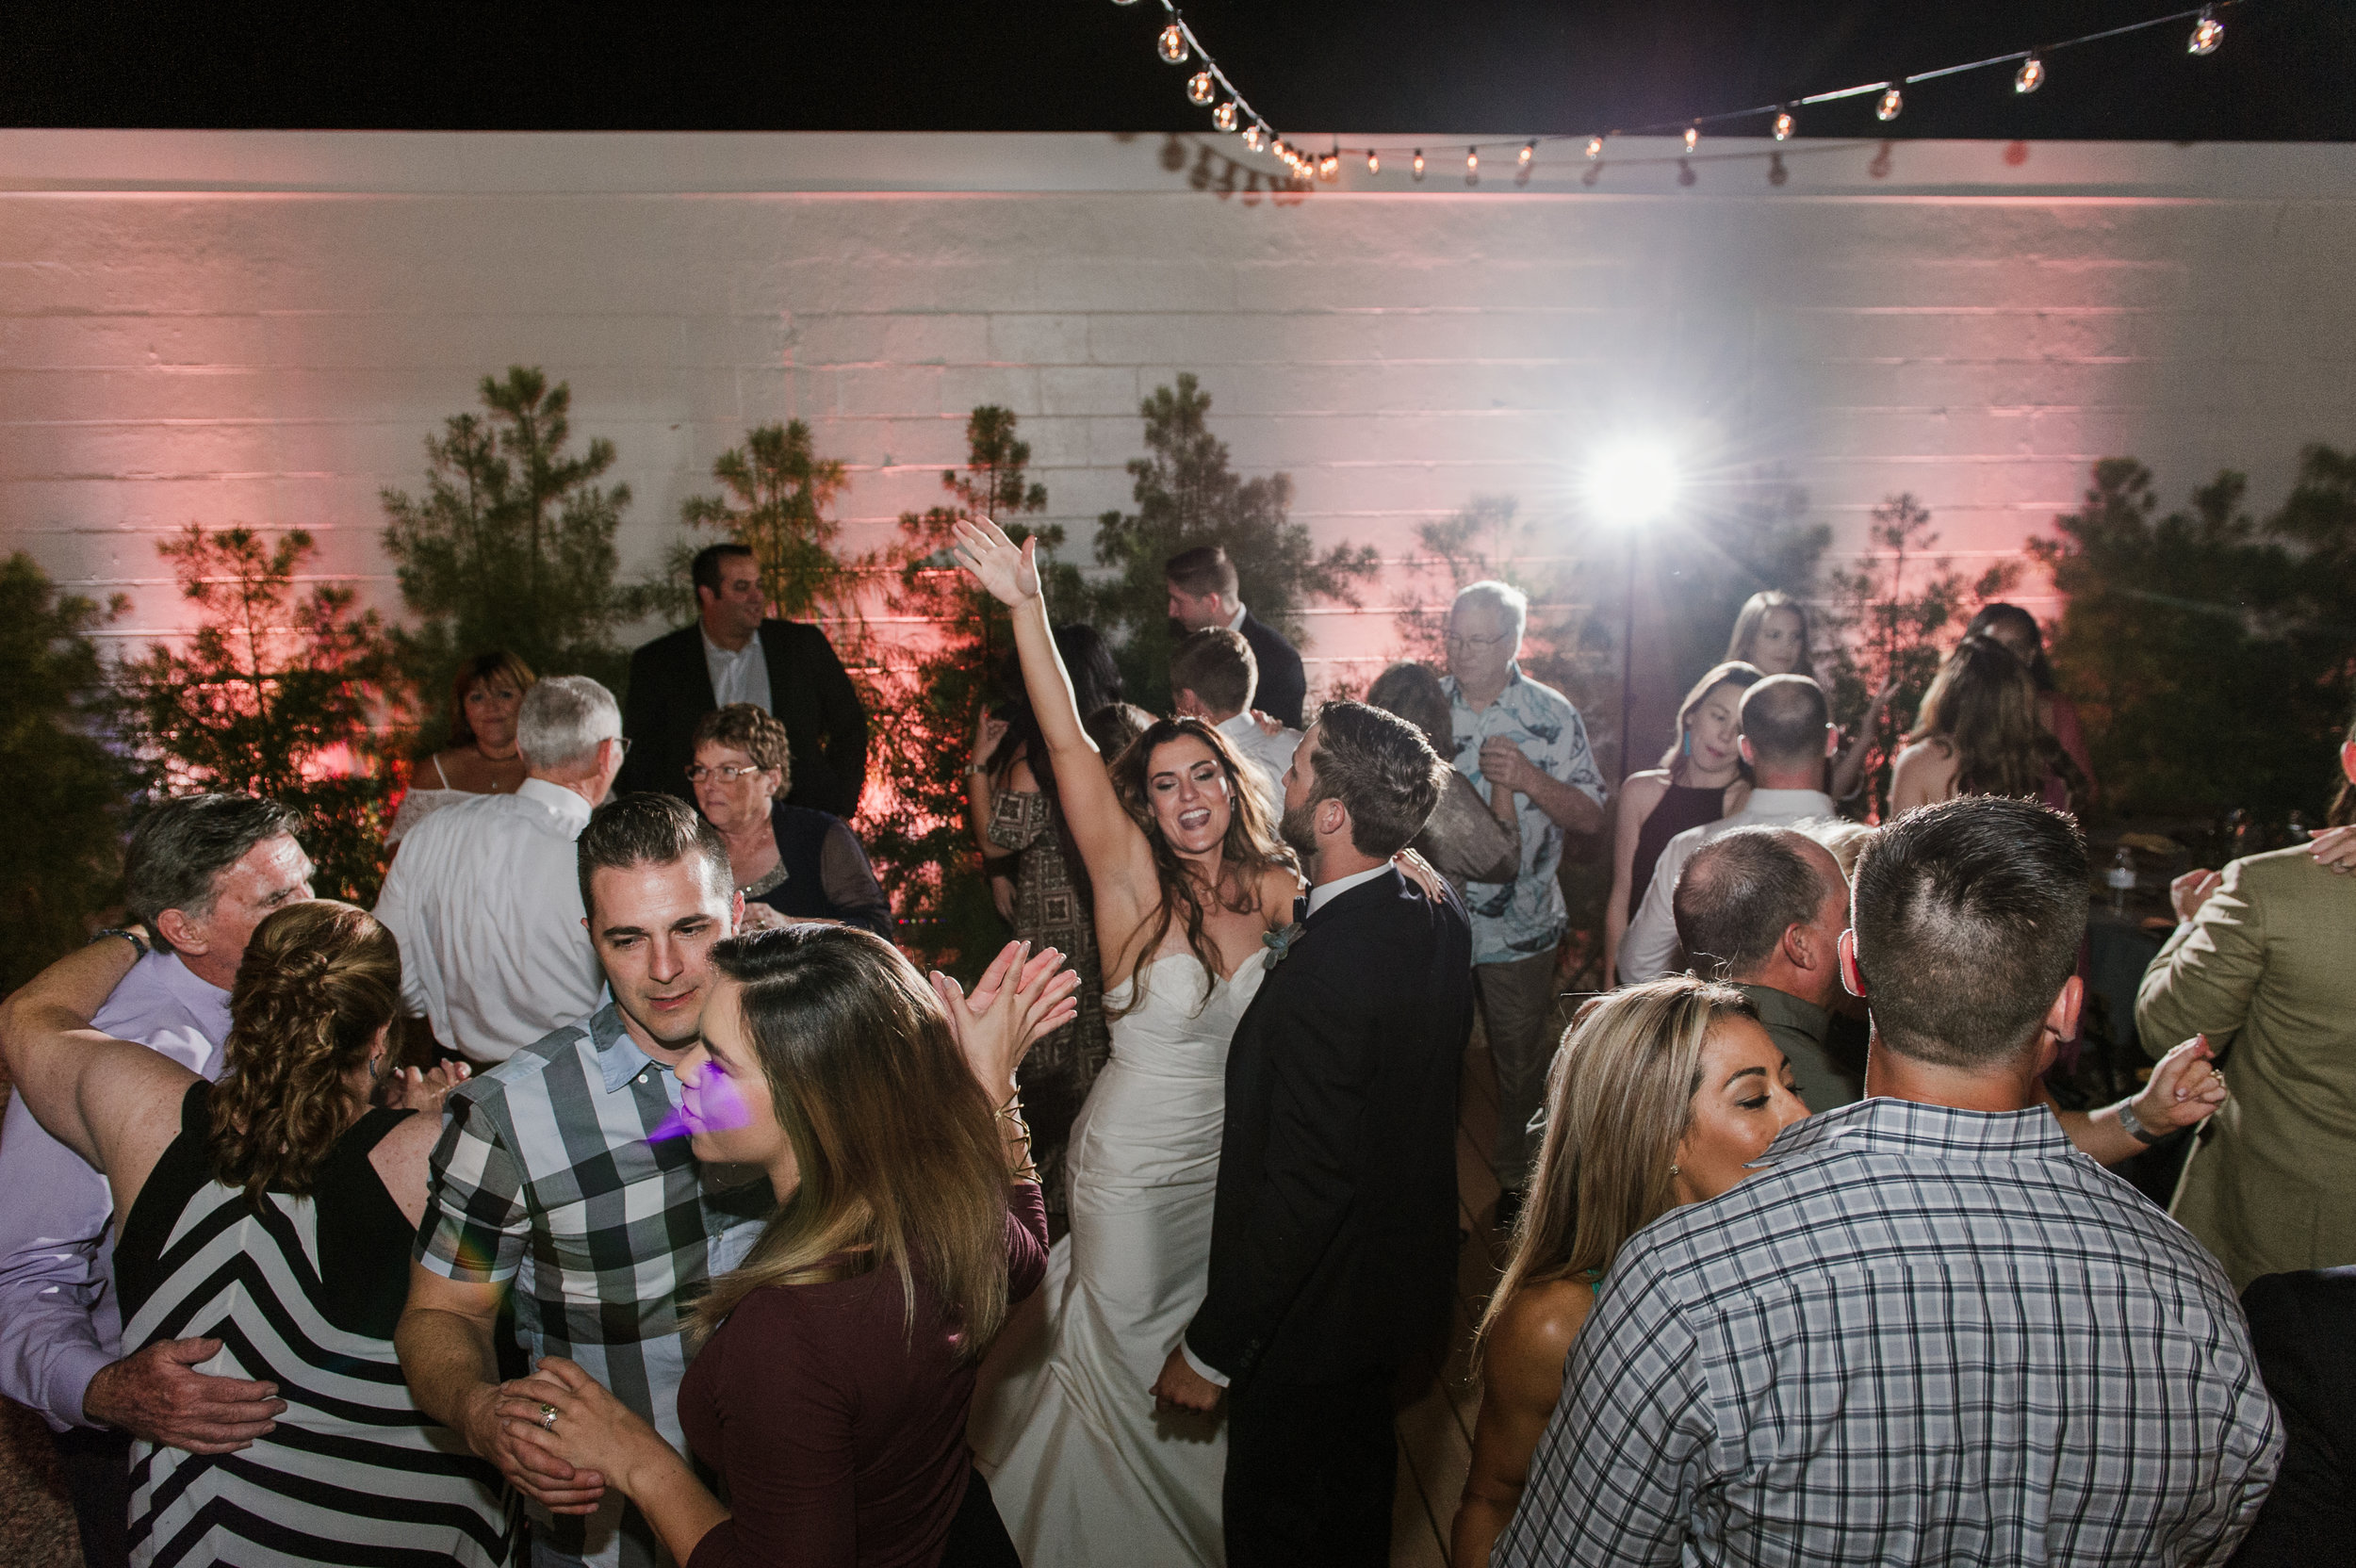 String lights and uplighting created the perfect party atmosphere!